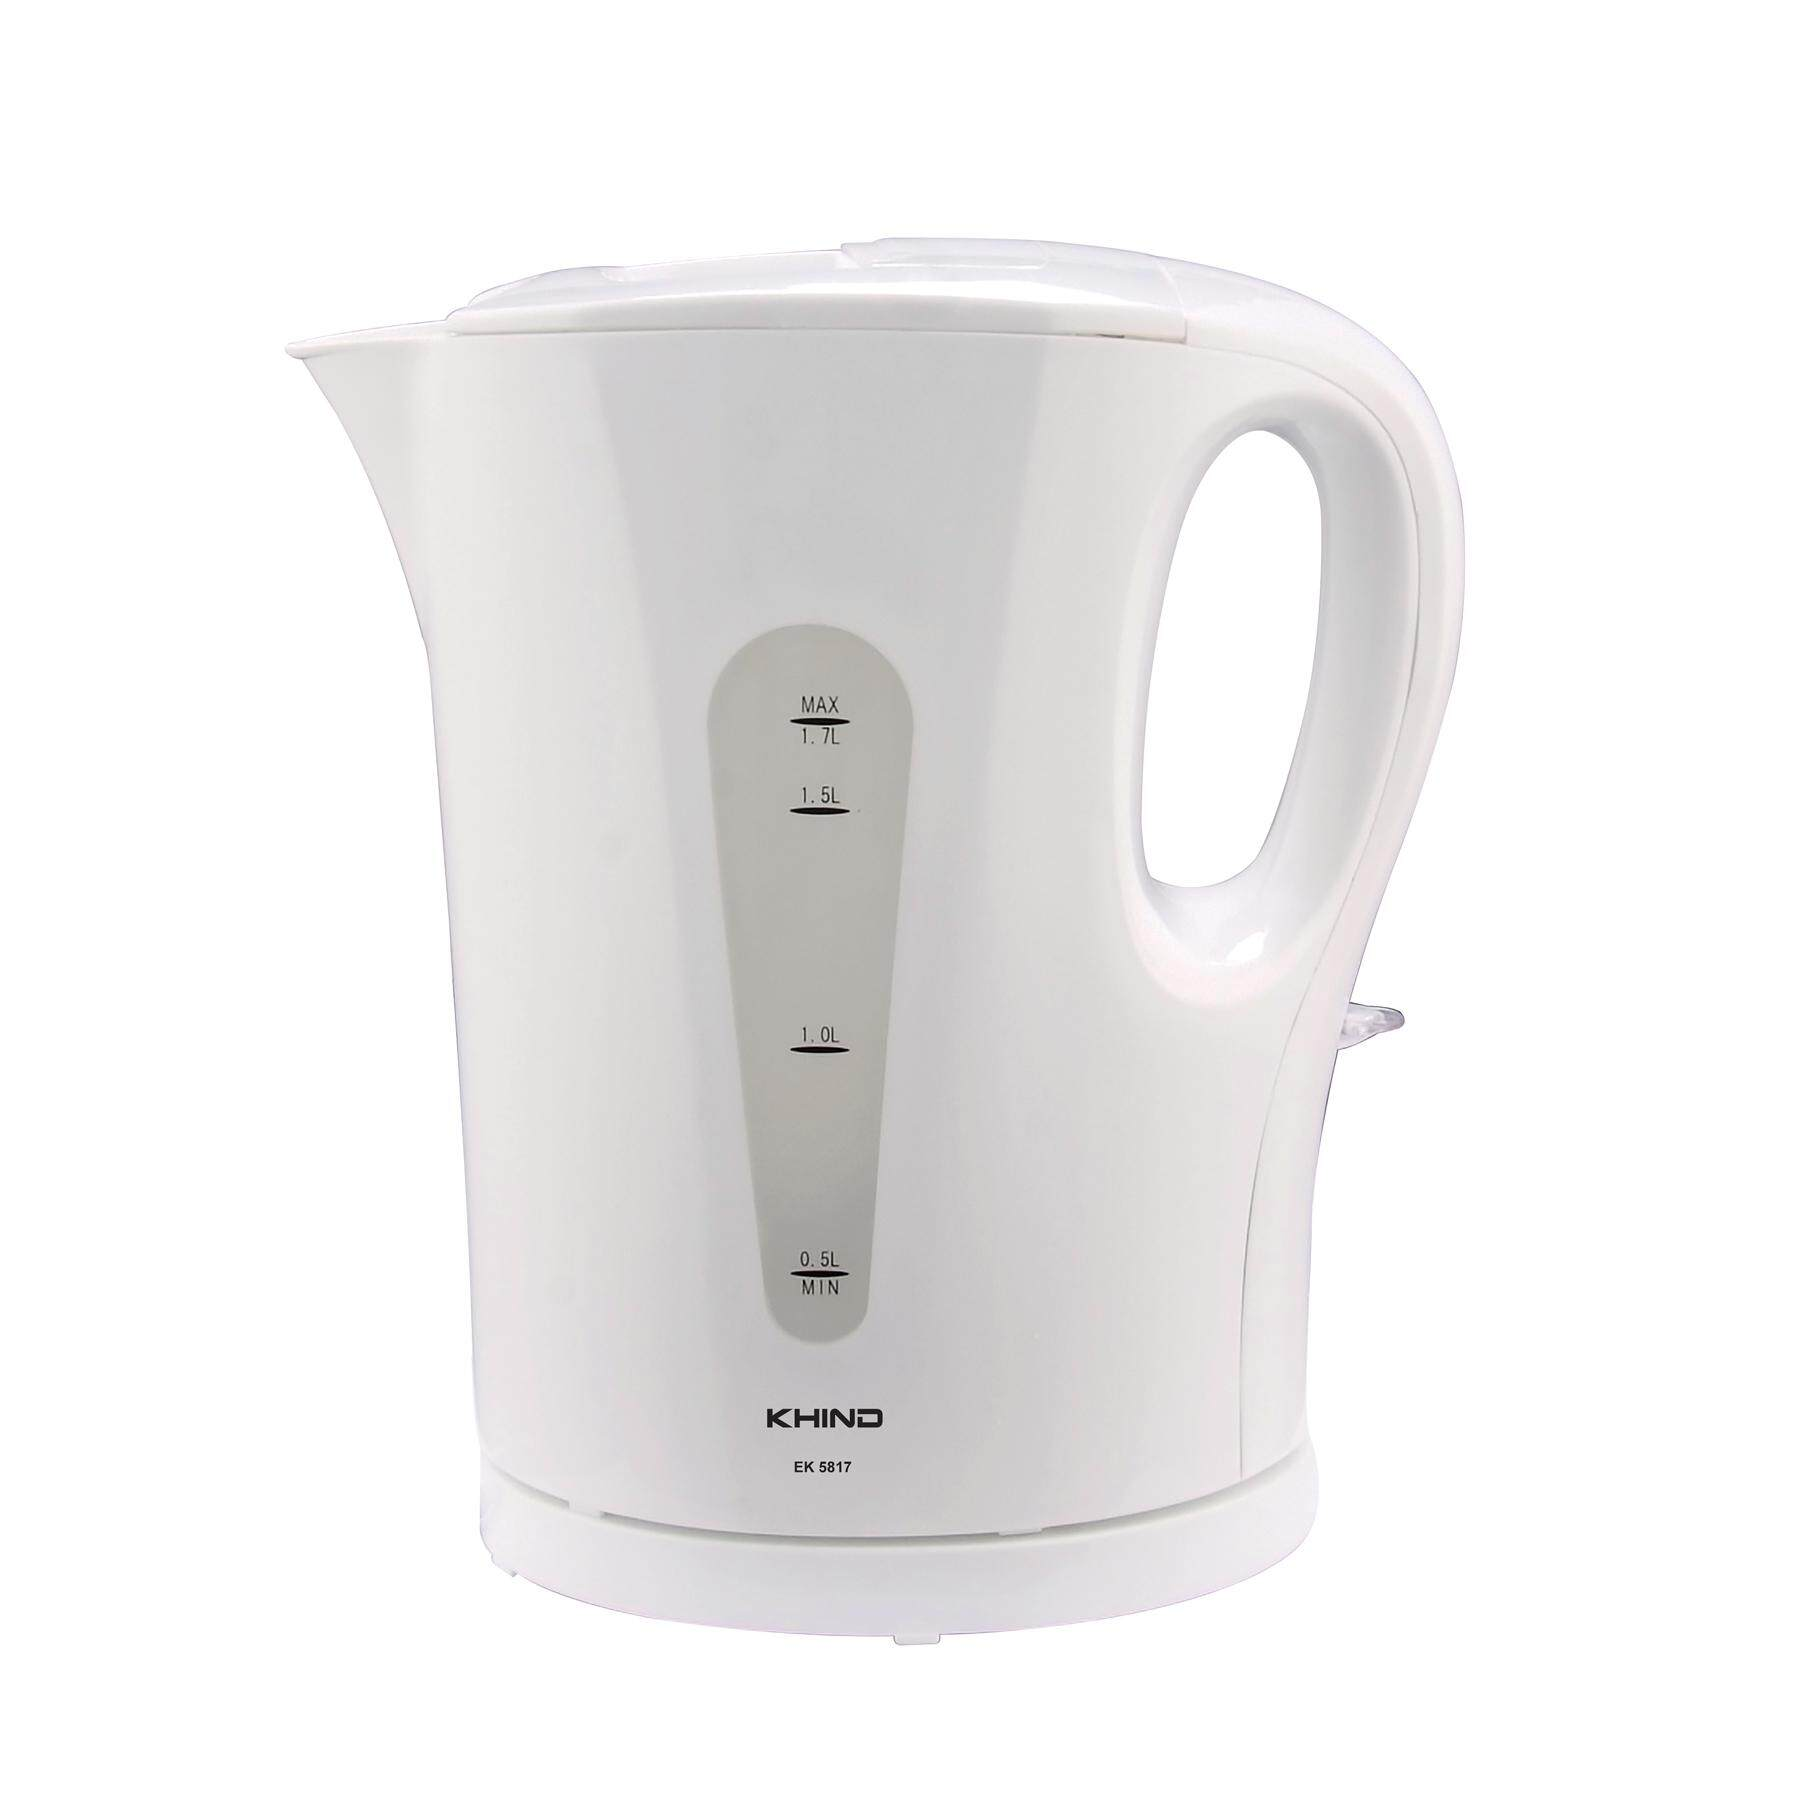 Khind Electric Jug Kettle Ek5817 (1.7l) By Lazada Retail Tech-Mall.